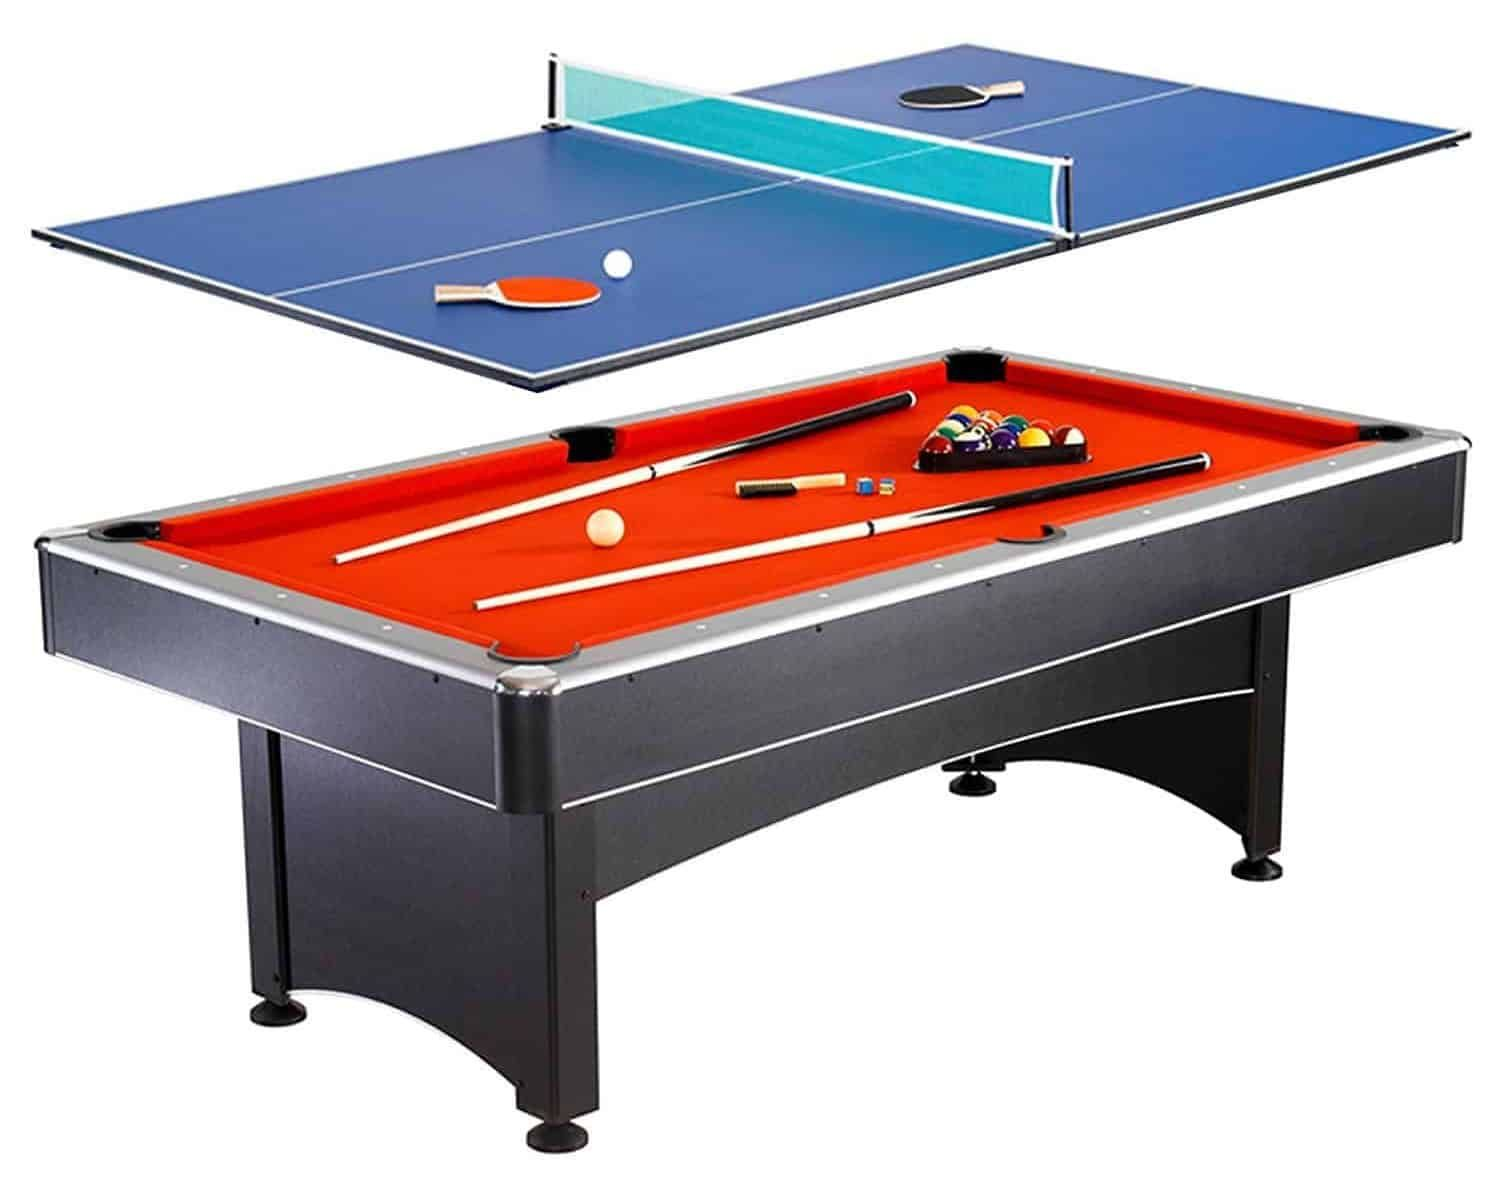 Top 10 Best Outdoor Pool Tables In 2020 Complete Reviews Outdoor Pool Table 7 Foot Pool Table Table Tennis Conversion Top